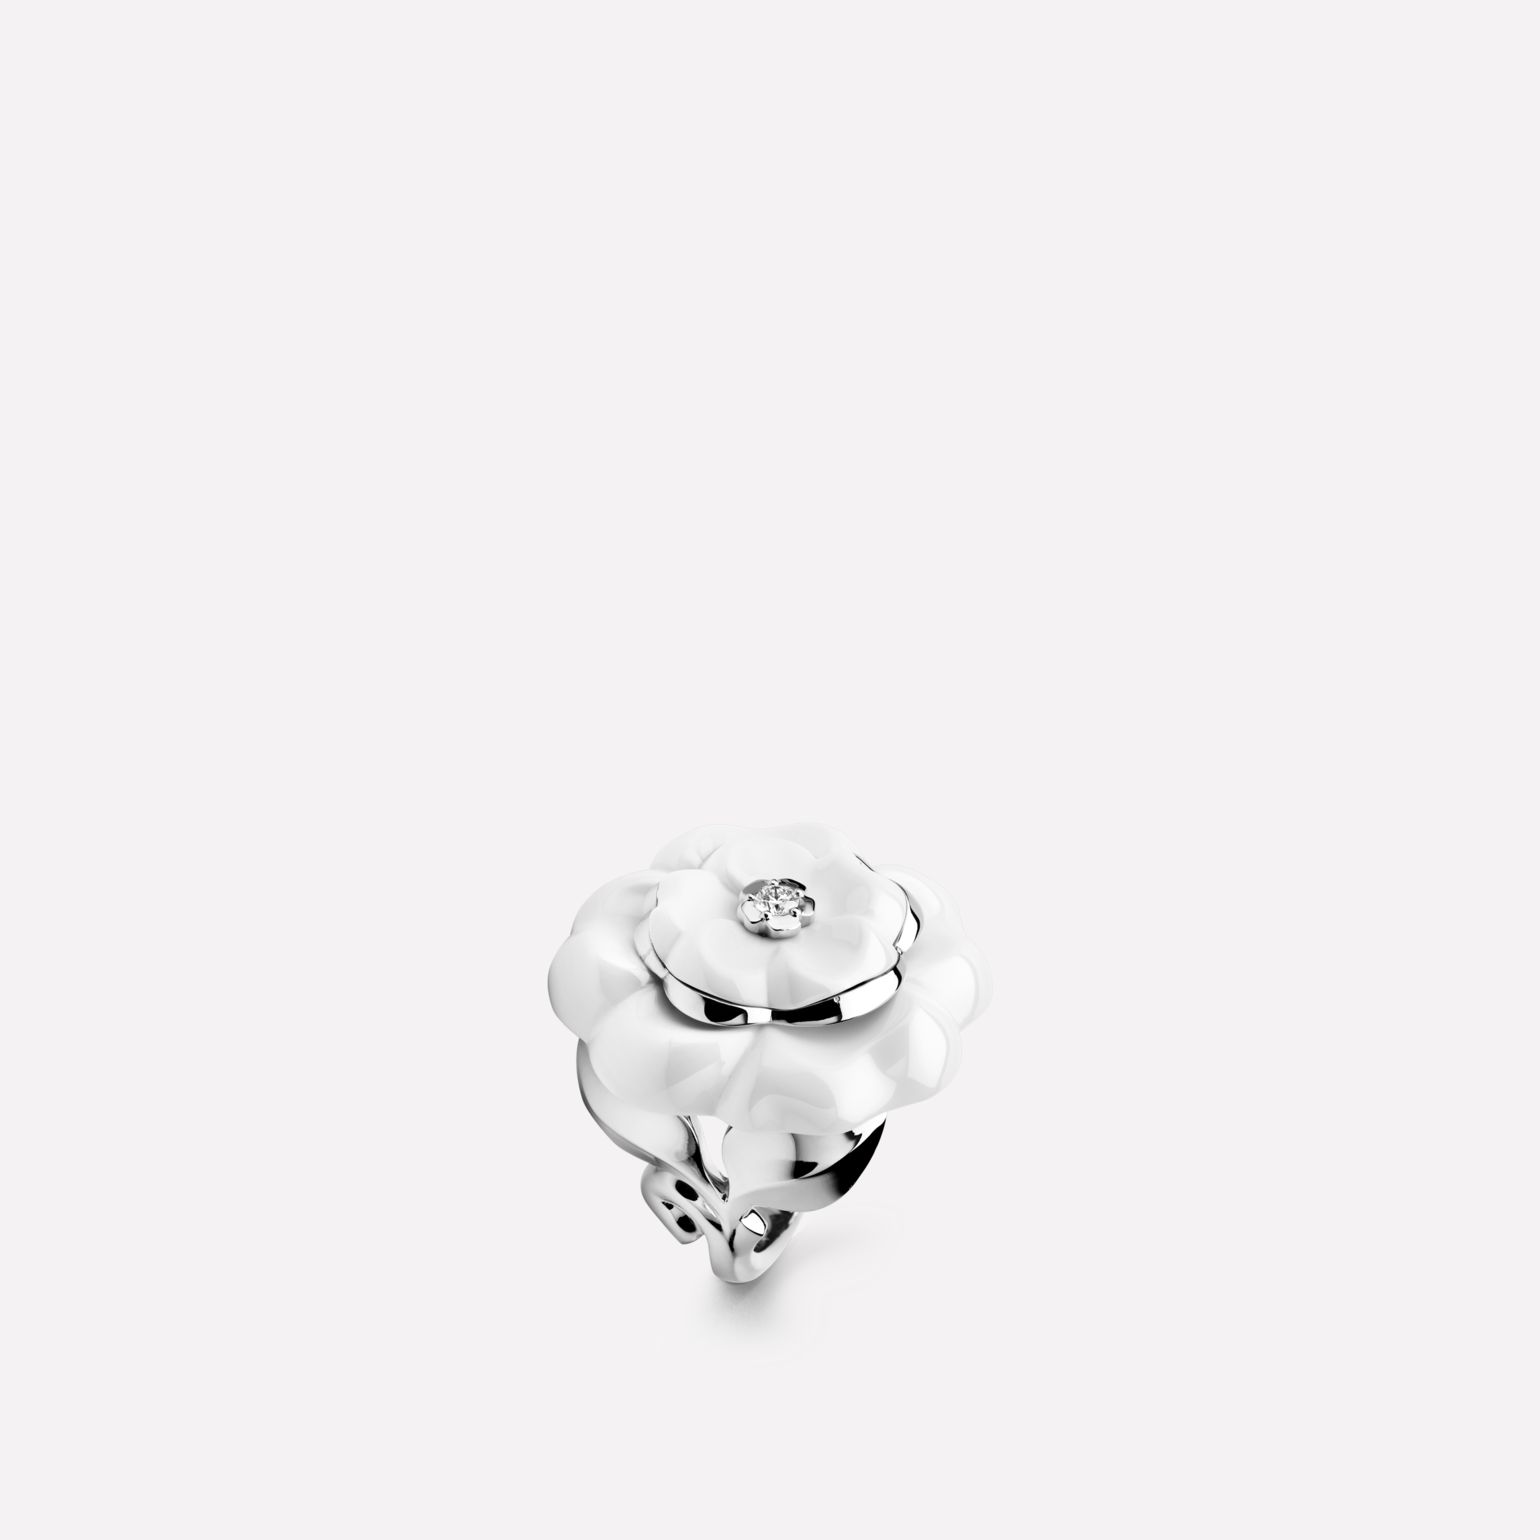 Camélia ring Camélia Galbé ring in white ceramic, 18K white gold with one center diamond